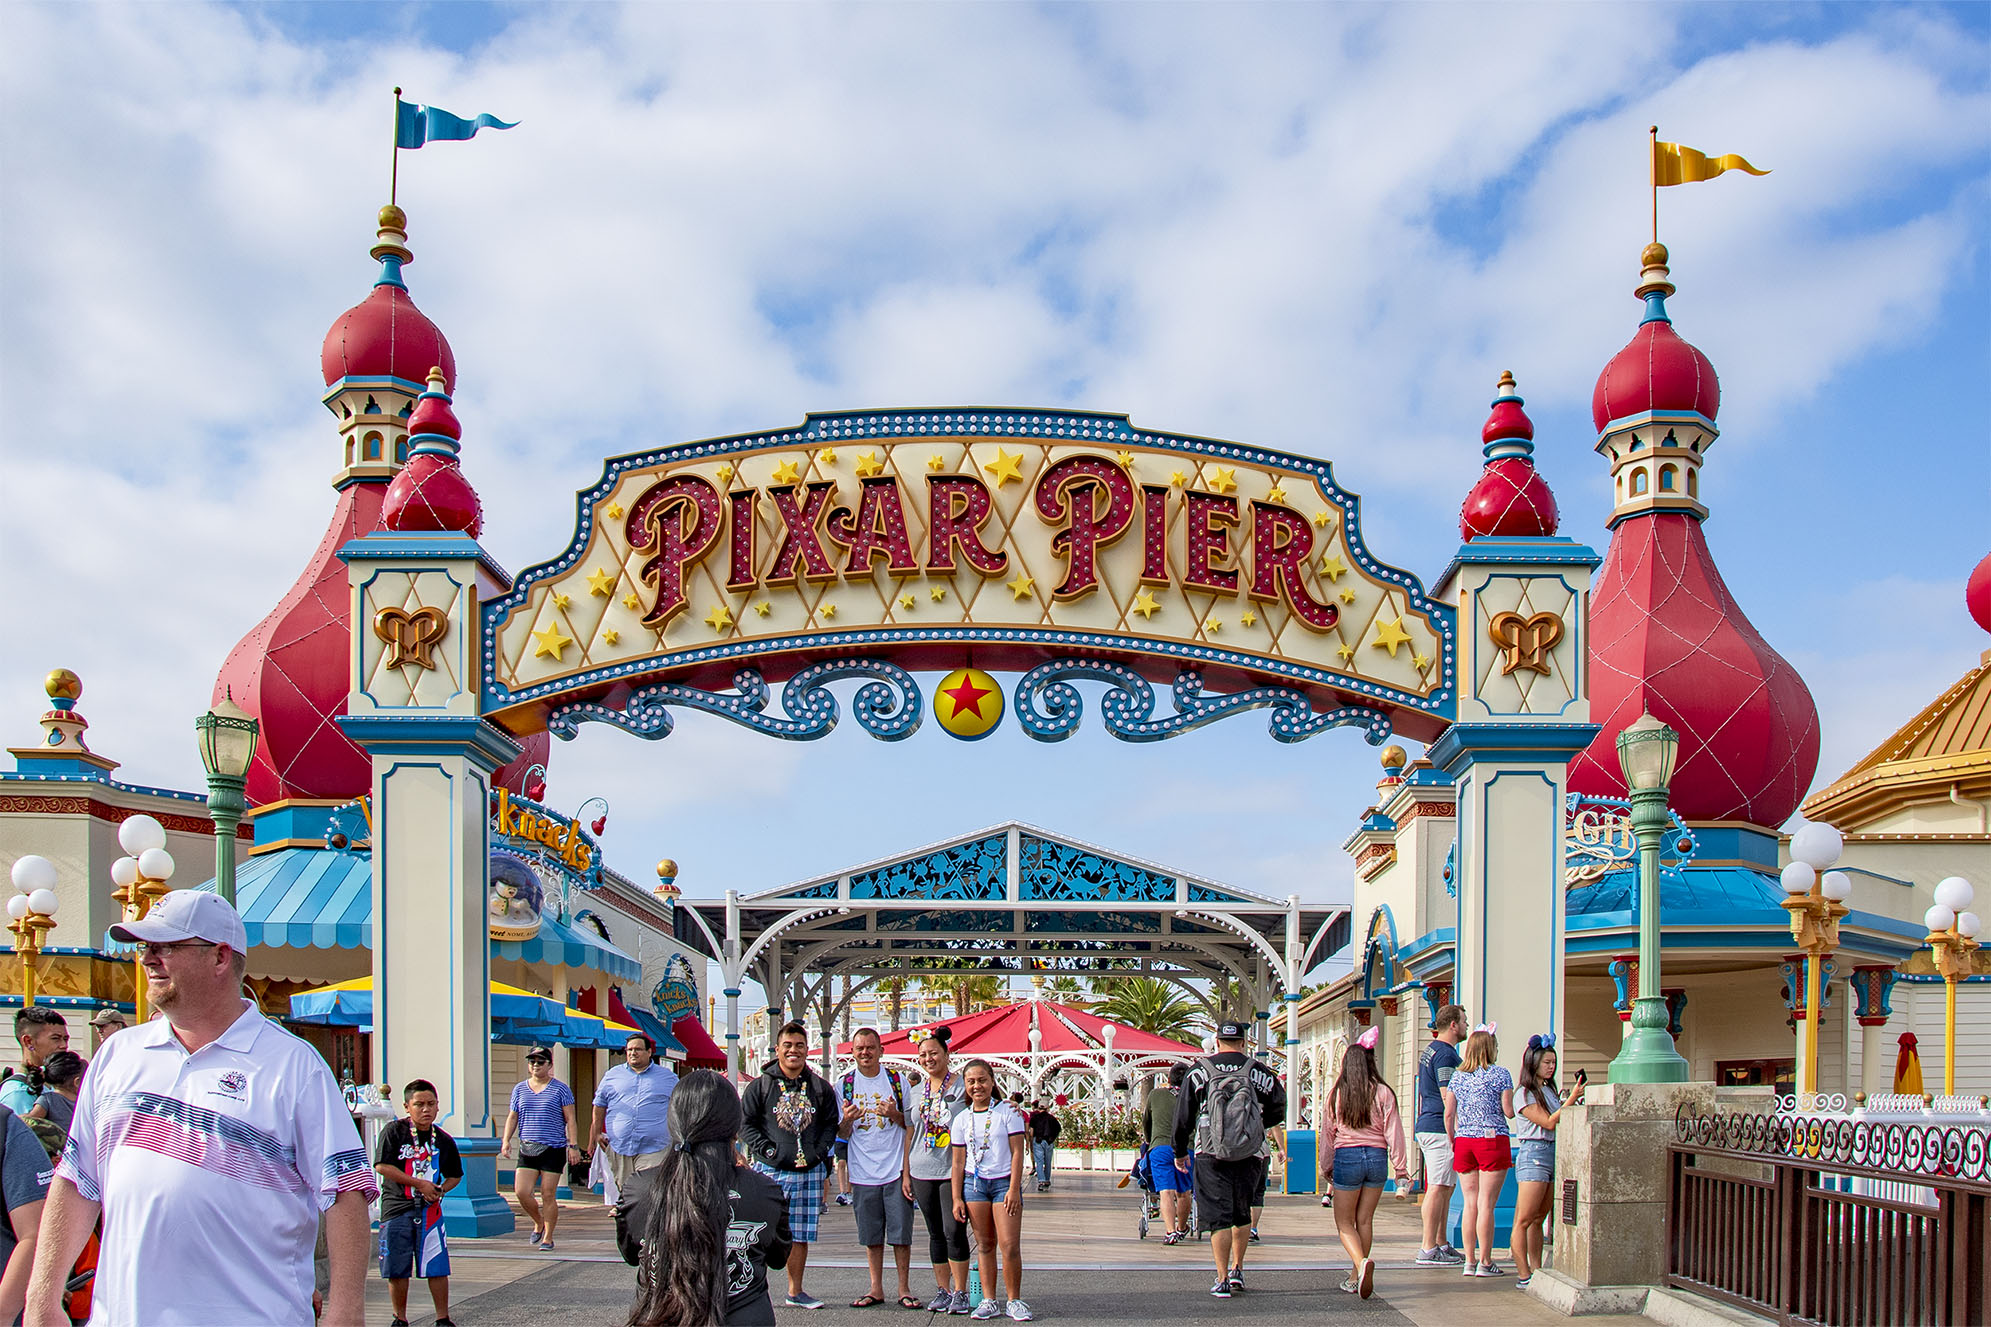 Pixar Pier Disney California Adventure Park